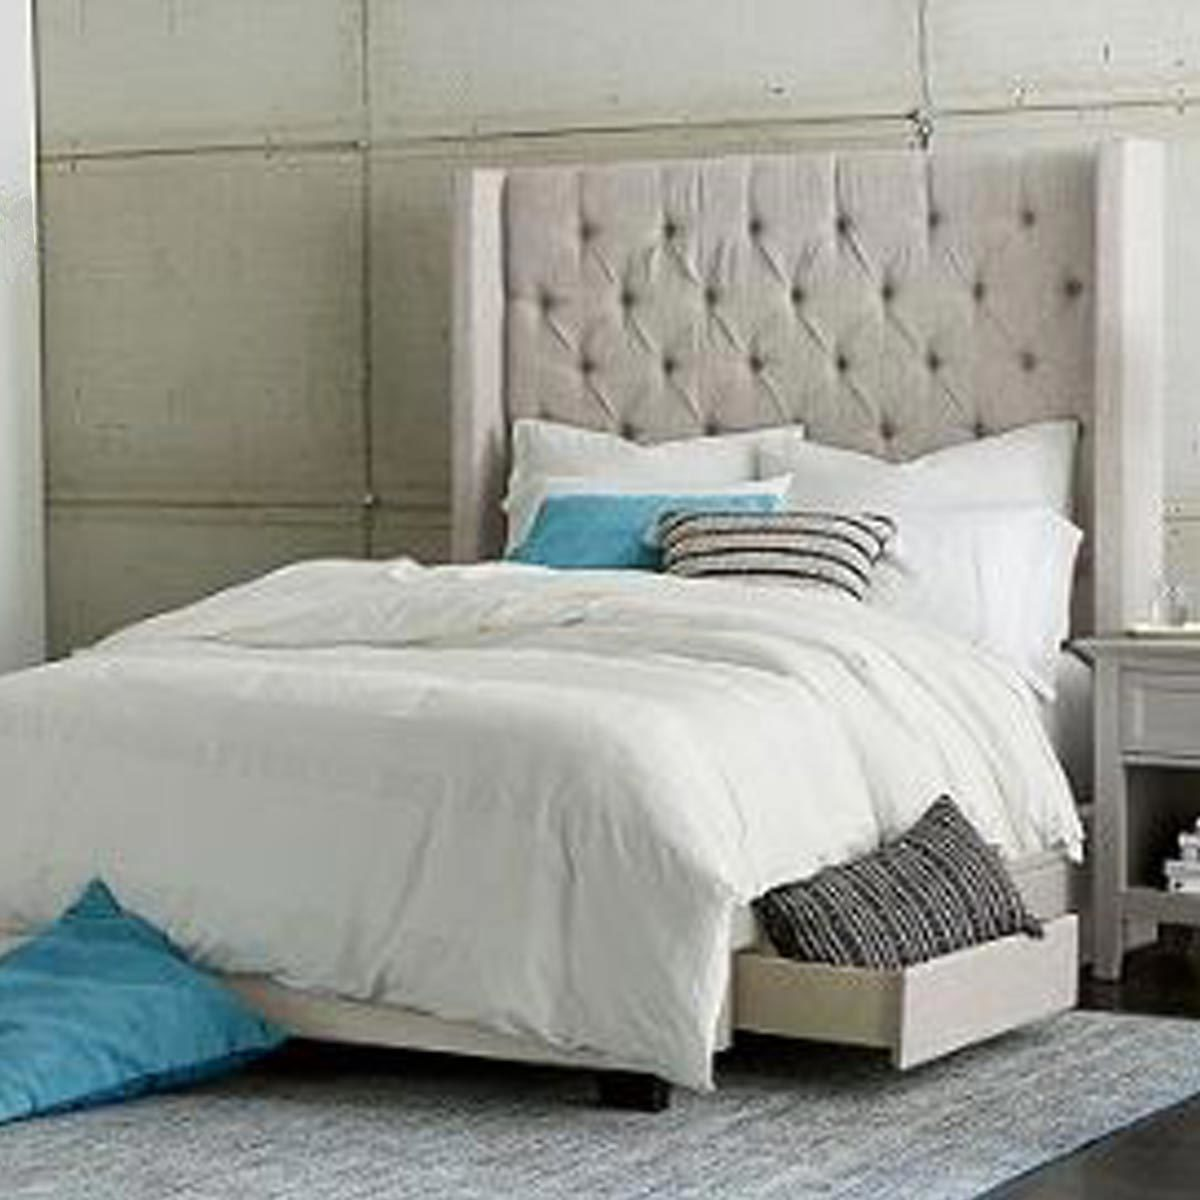 Storage bed with upholstered headboard, white bedding, and blue pillows photo